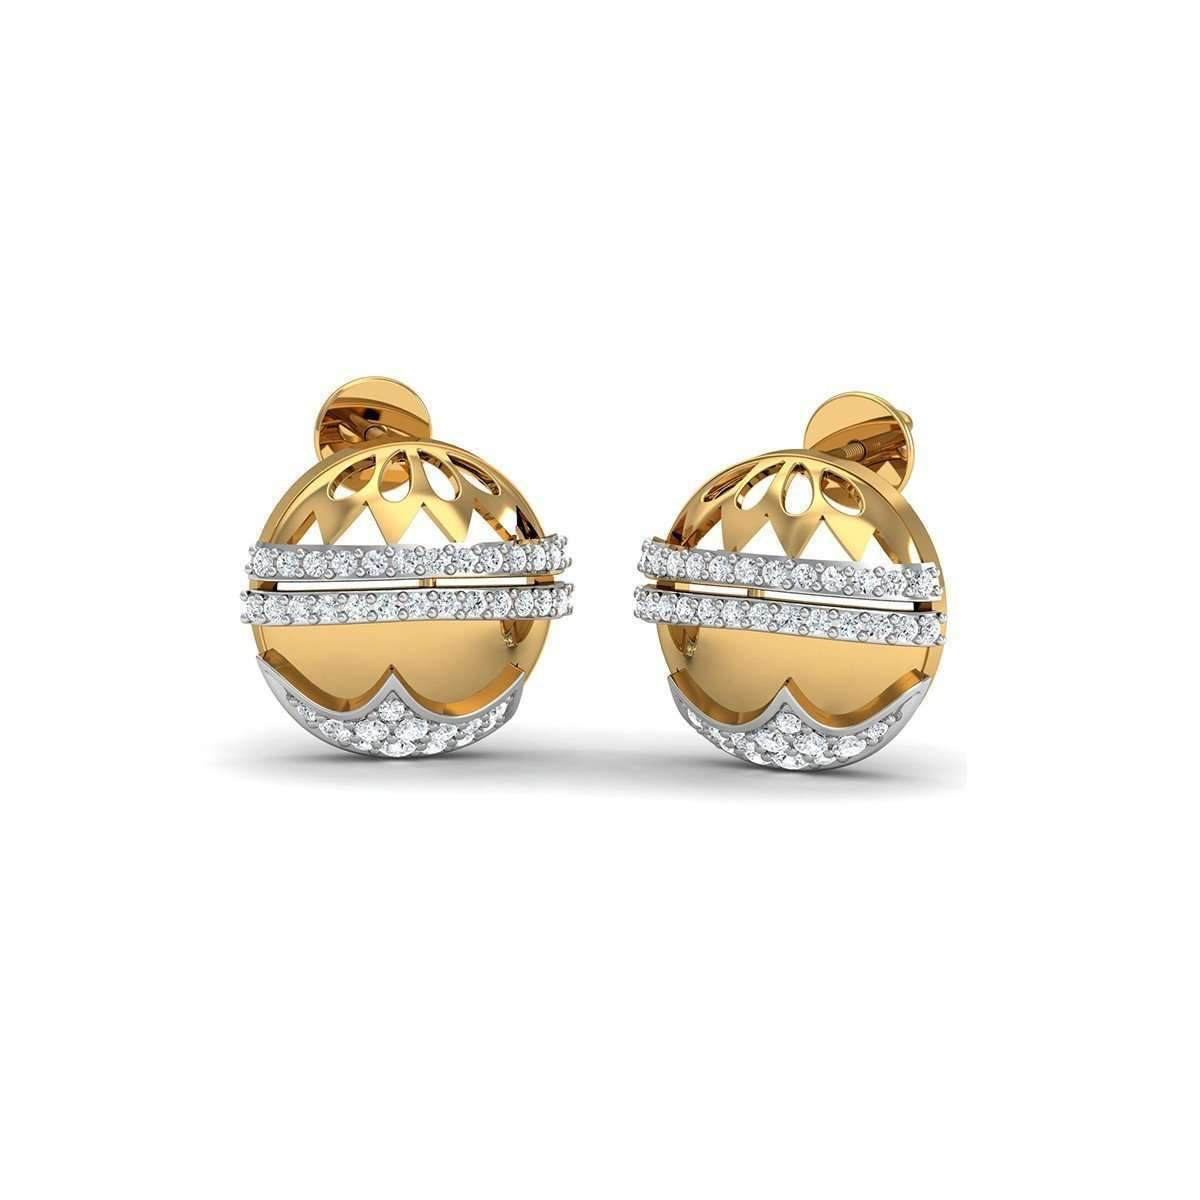 Diamoire Jewels SI3 Diamonds and 18kt Yellow Gold Pave Earrings 8Y2qQoJ2i